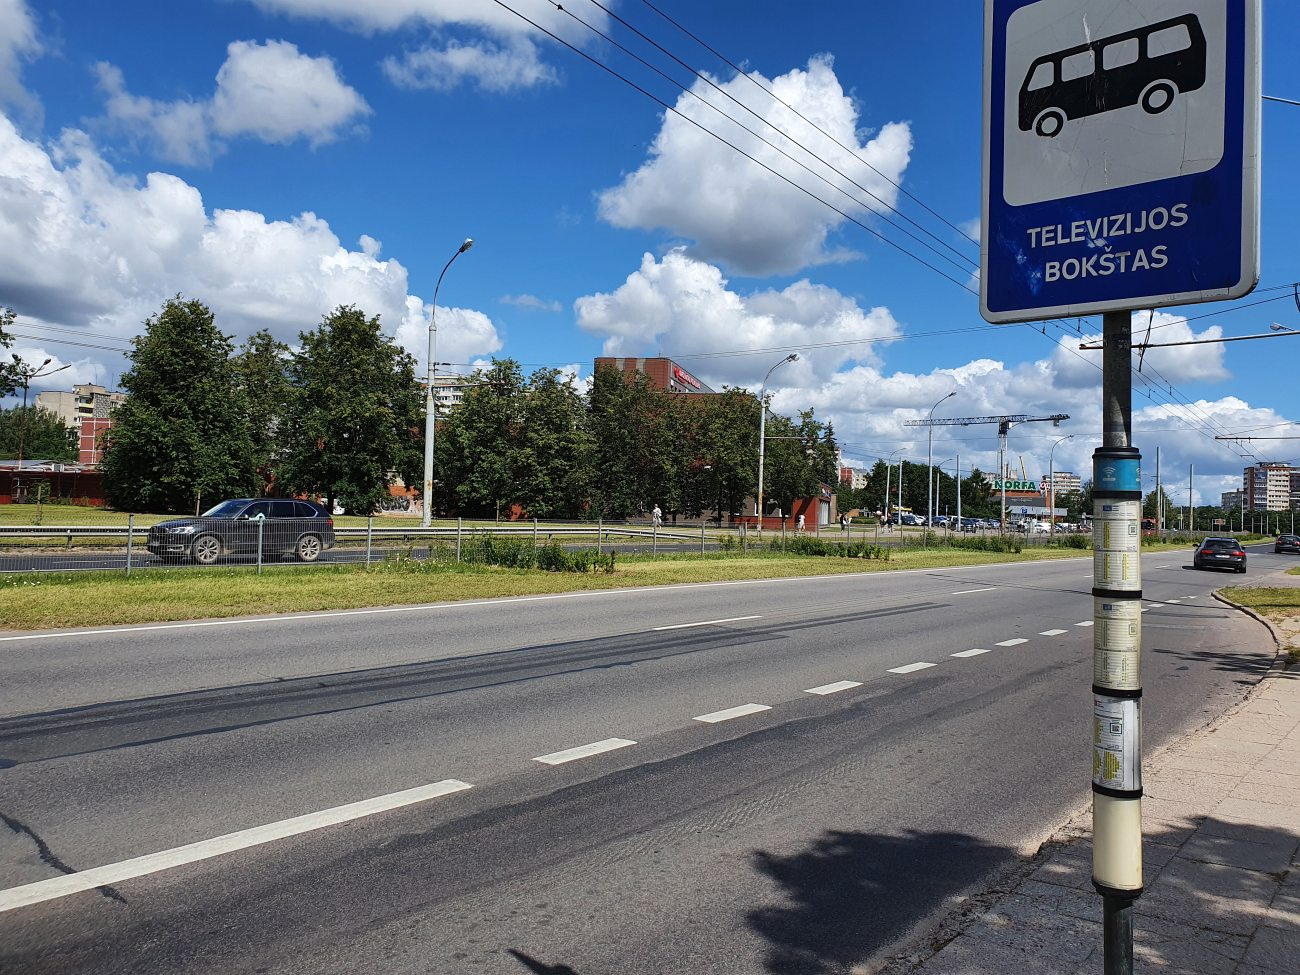 vilnius-tv-tower-bus-stop